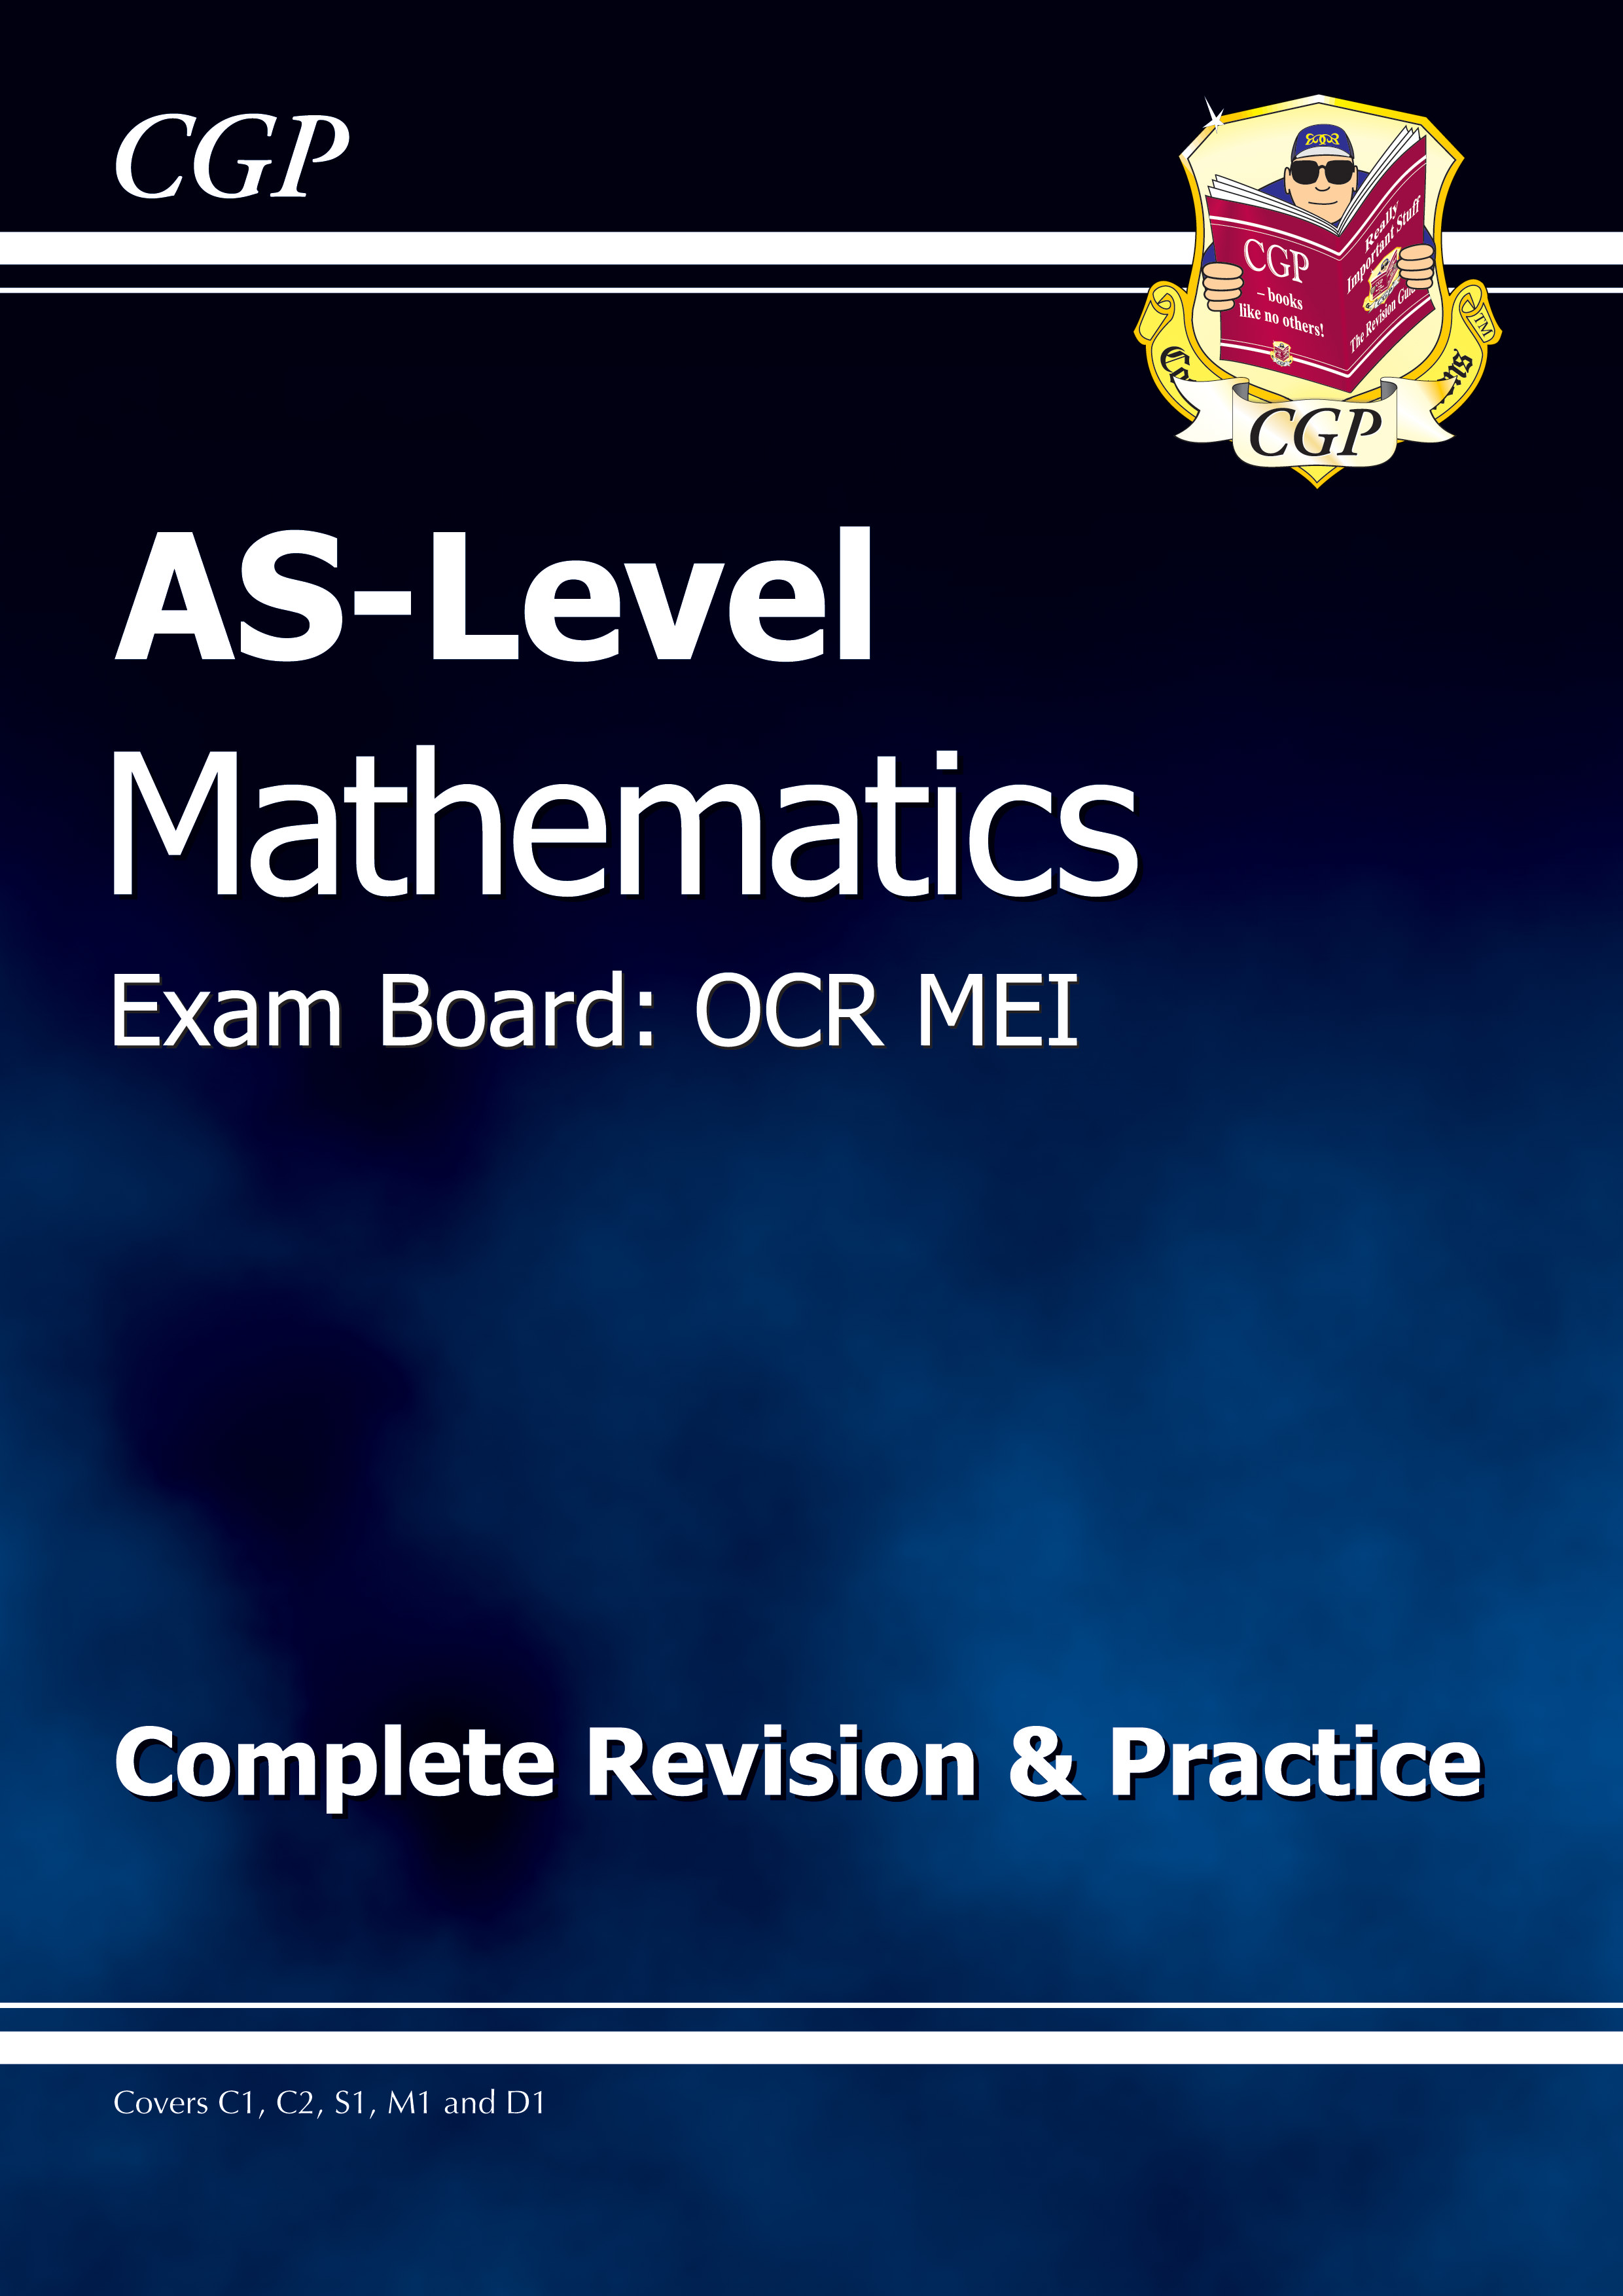 MRMR51DK - AS-Level Maths OCR MEI Complete Revision & Practice